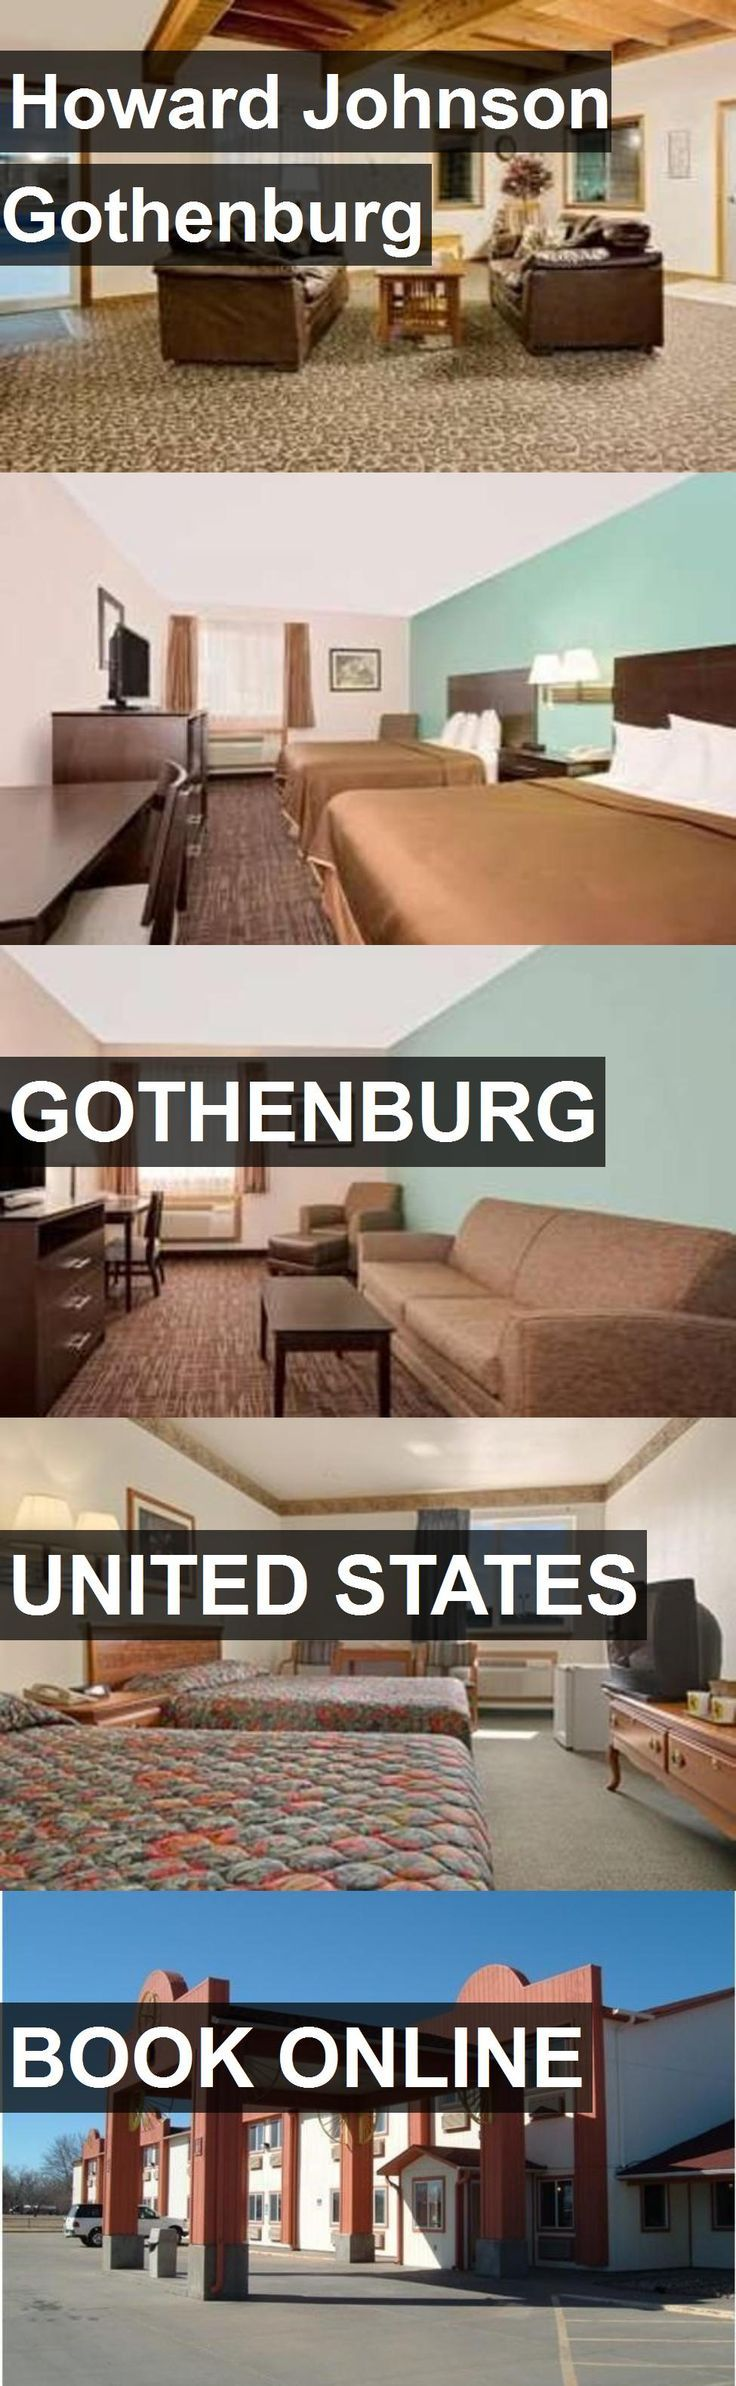 Hotel Howard Johnson Gothenburg in Gothenburg, Uni…